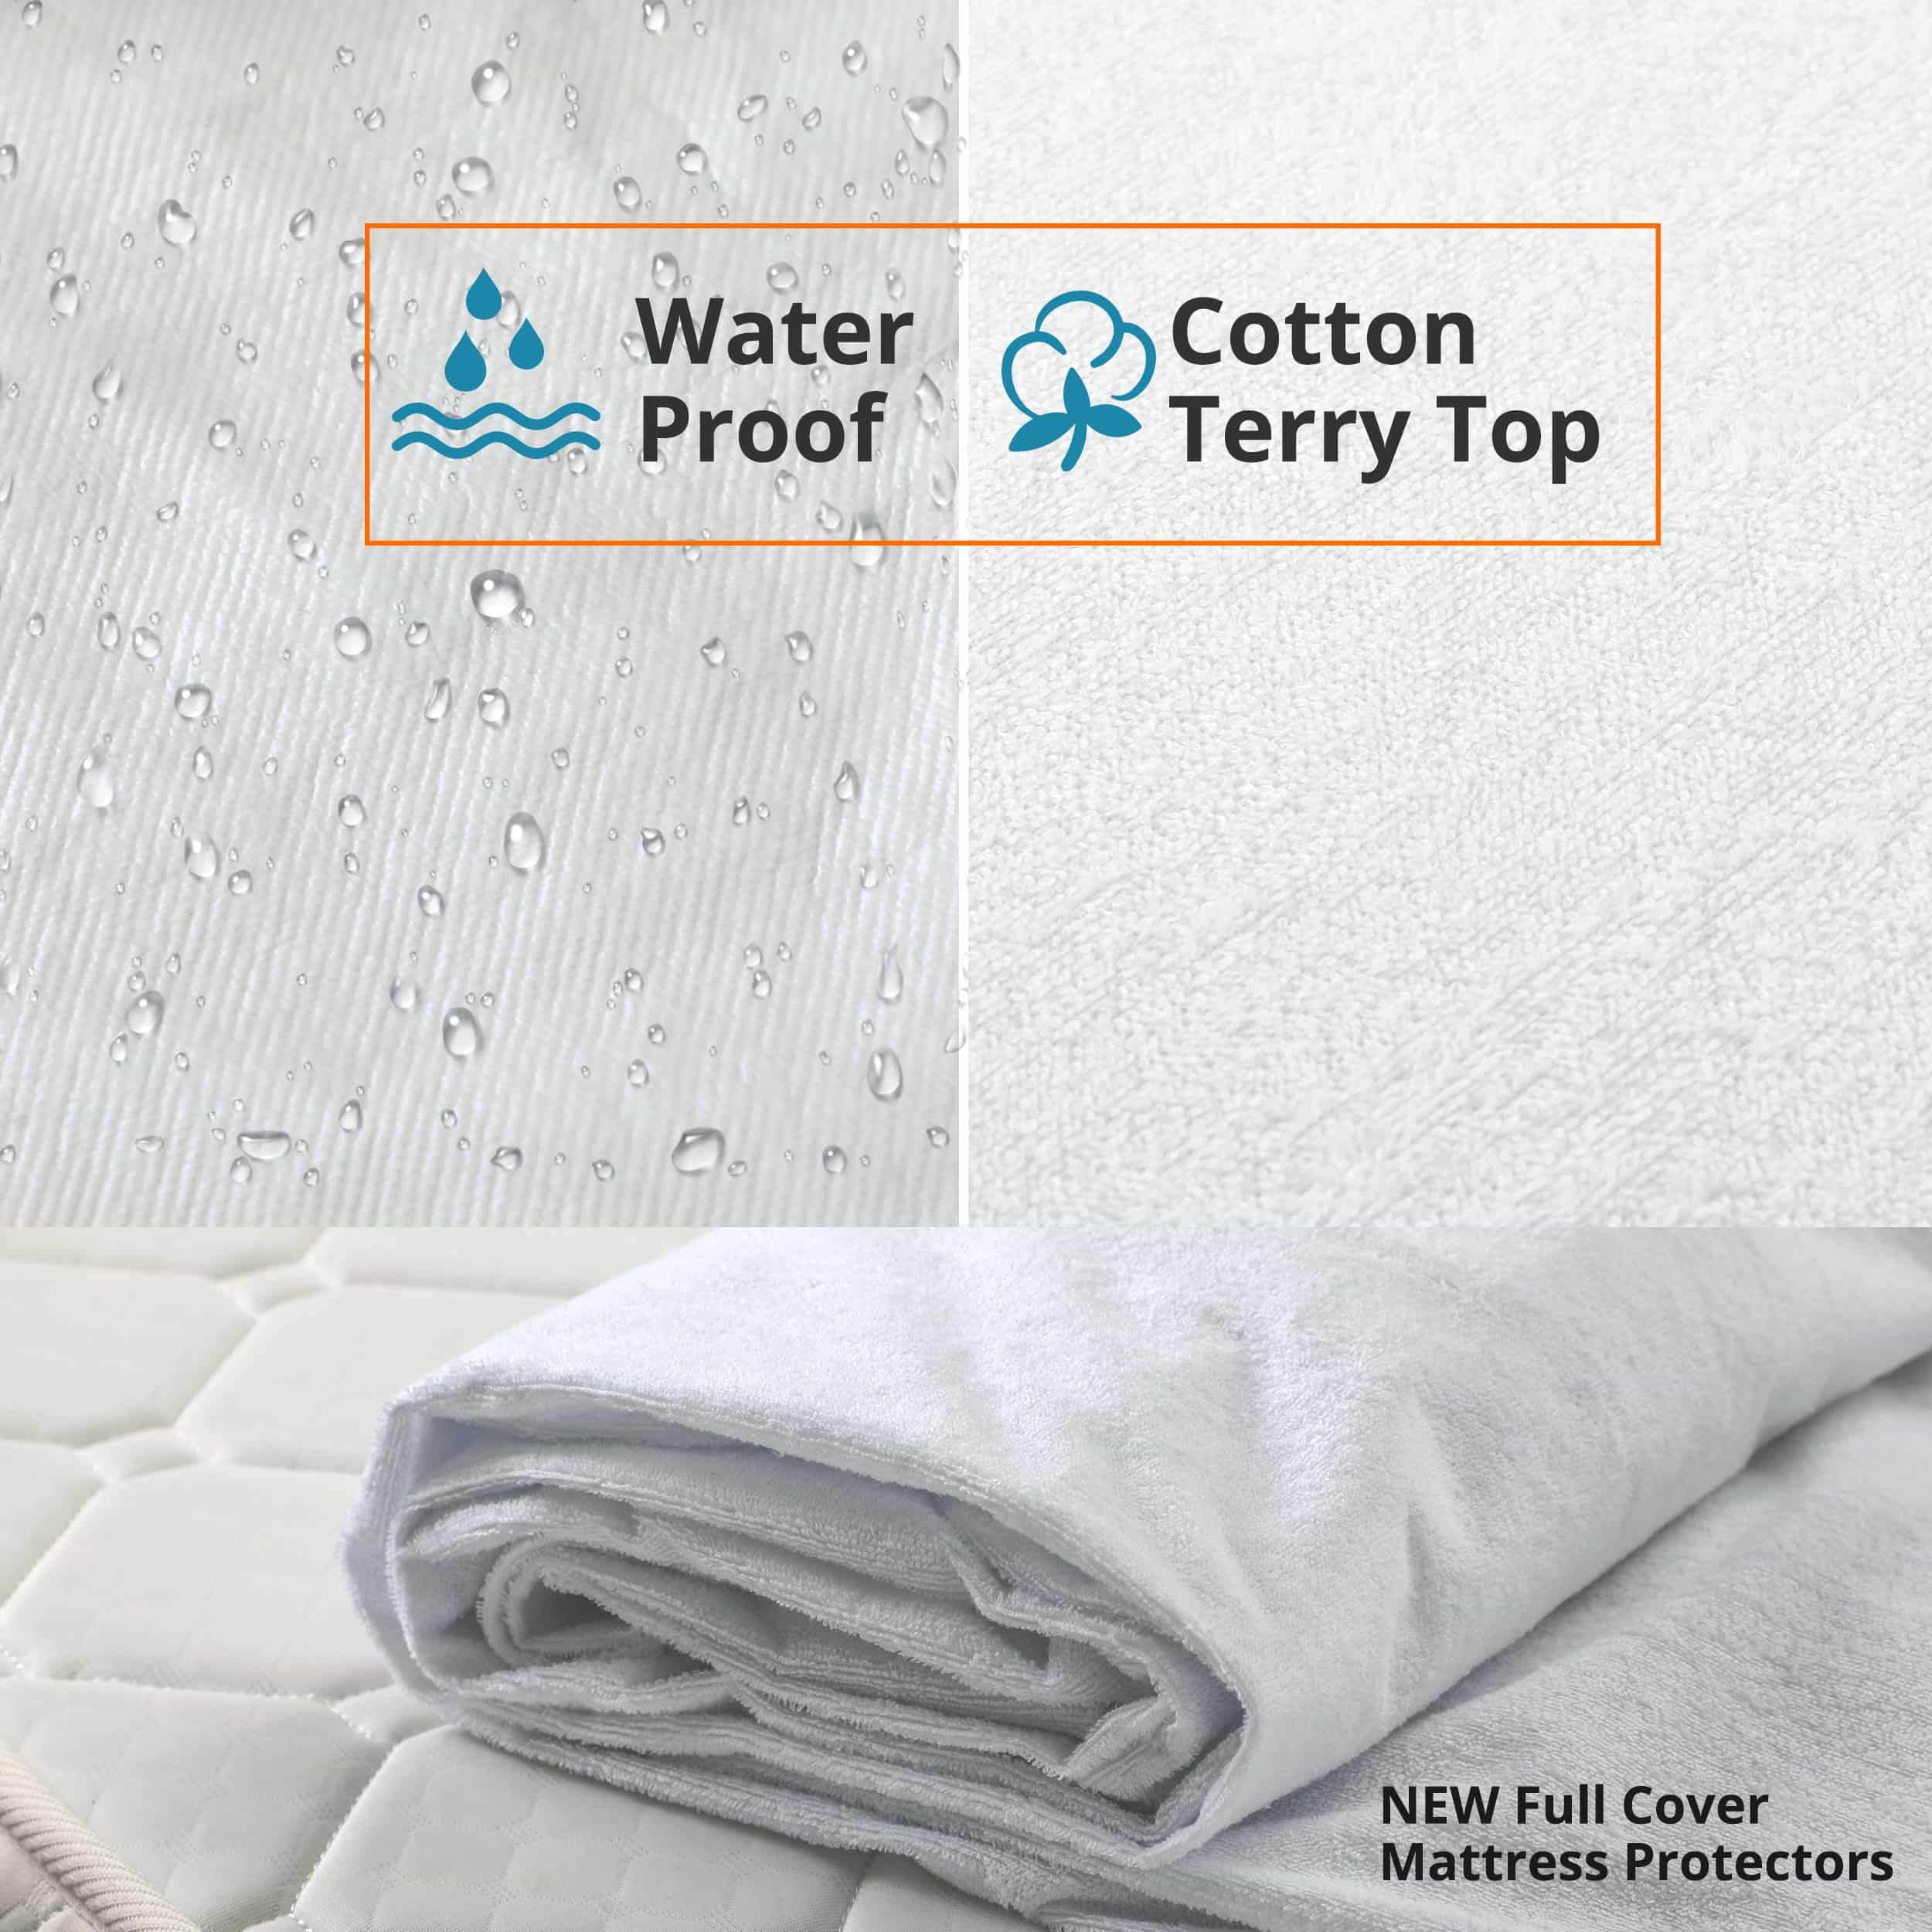 mattress-protector-small-double-min.jpg?time=1635056428